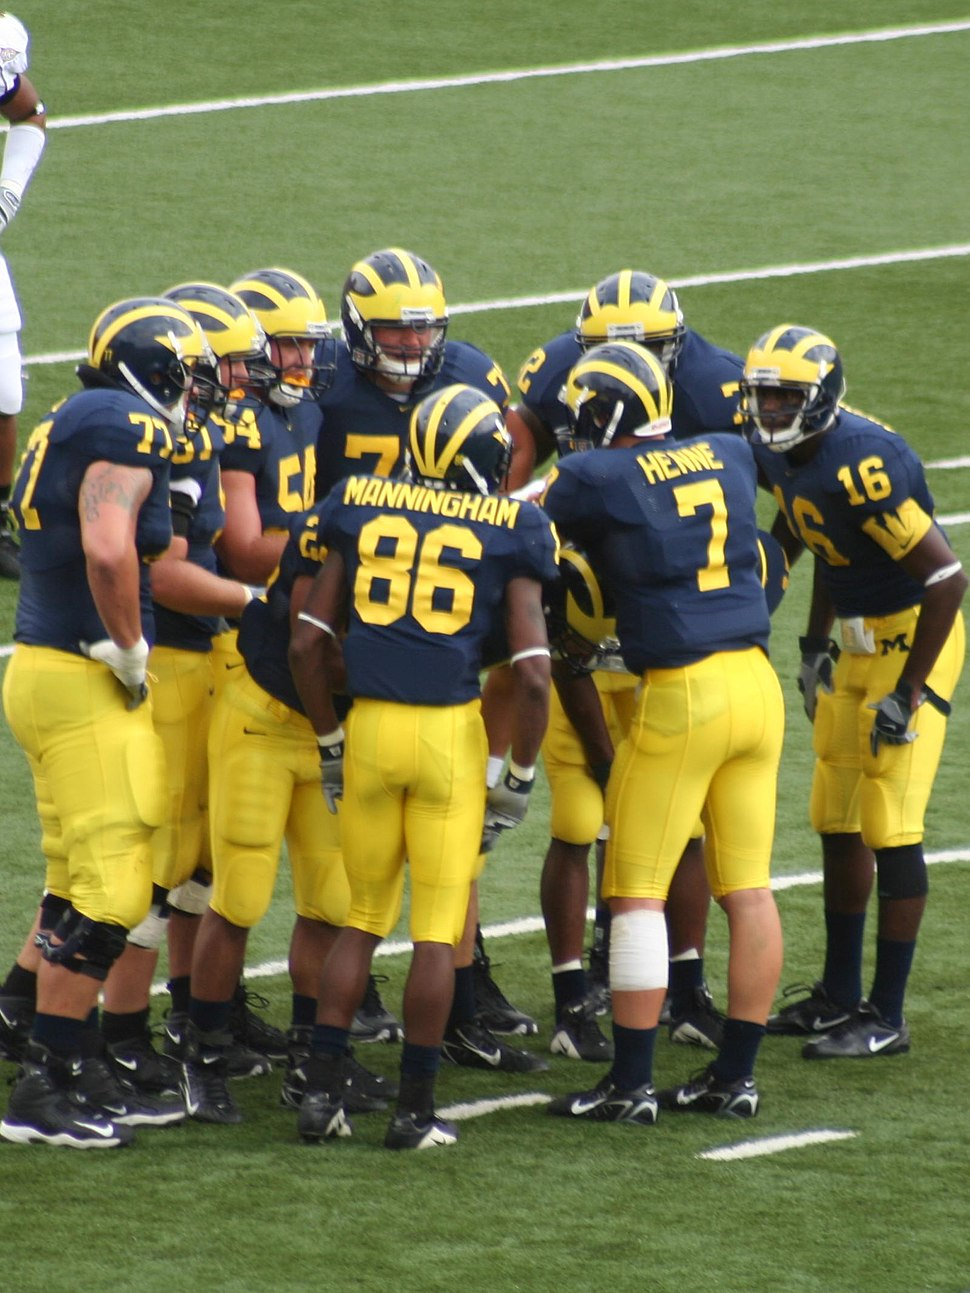 20060909 Michigan Wolverines Huddle with Long, Manningham, Henne and Arrington